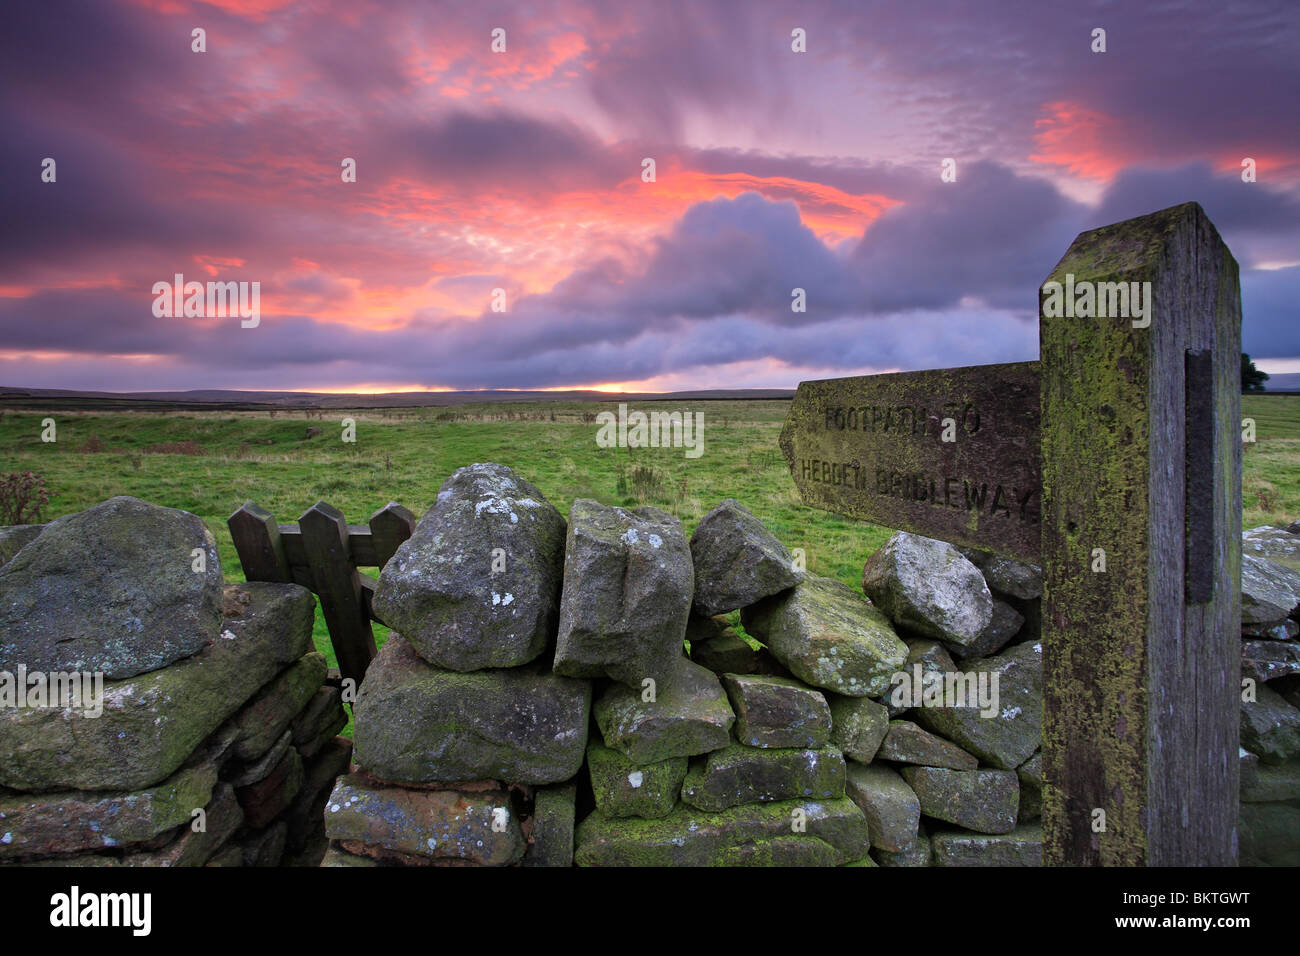 A signpost marks the way toward the Hebden Bridleway near Grassington in the Yorkshire Dales of England - Stock Image